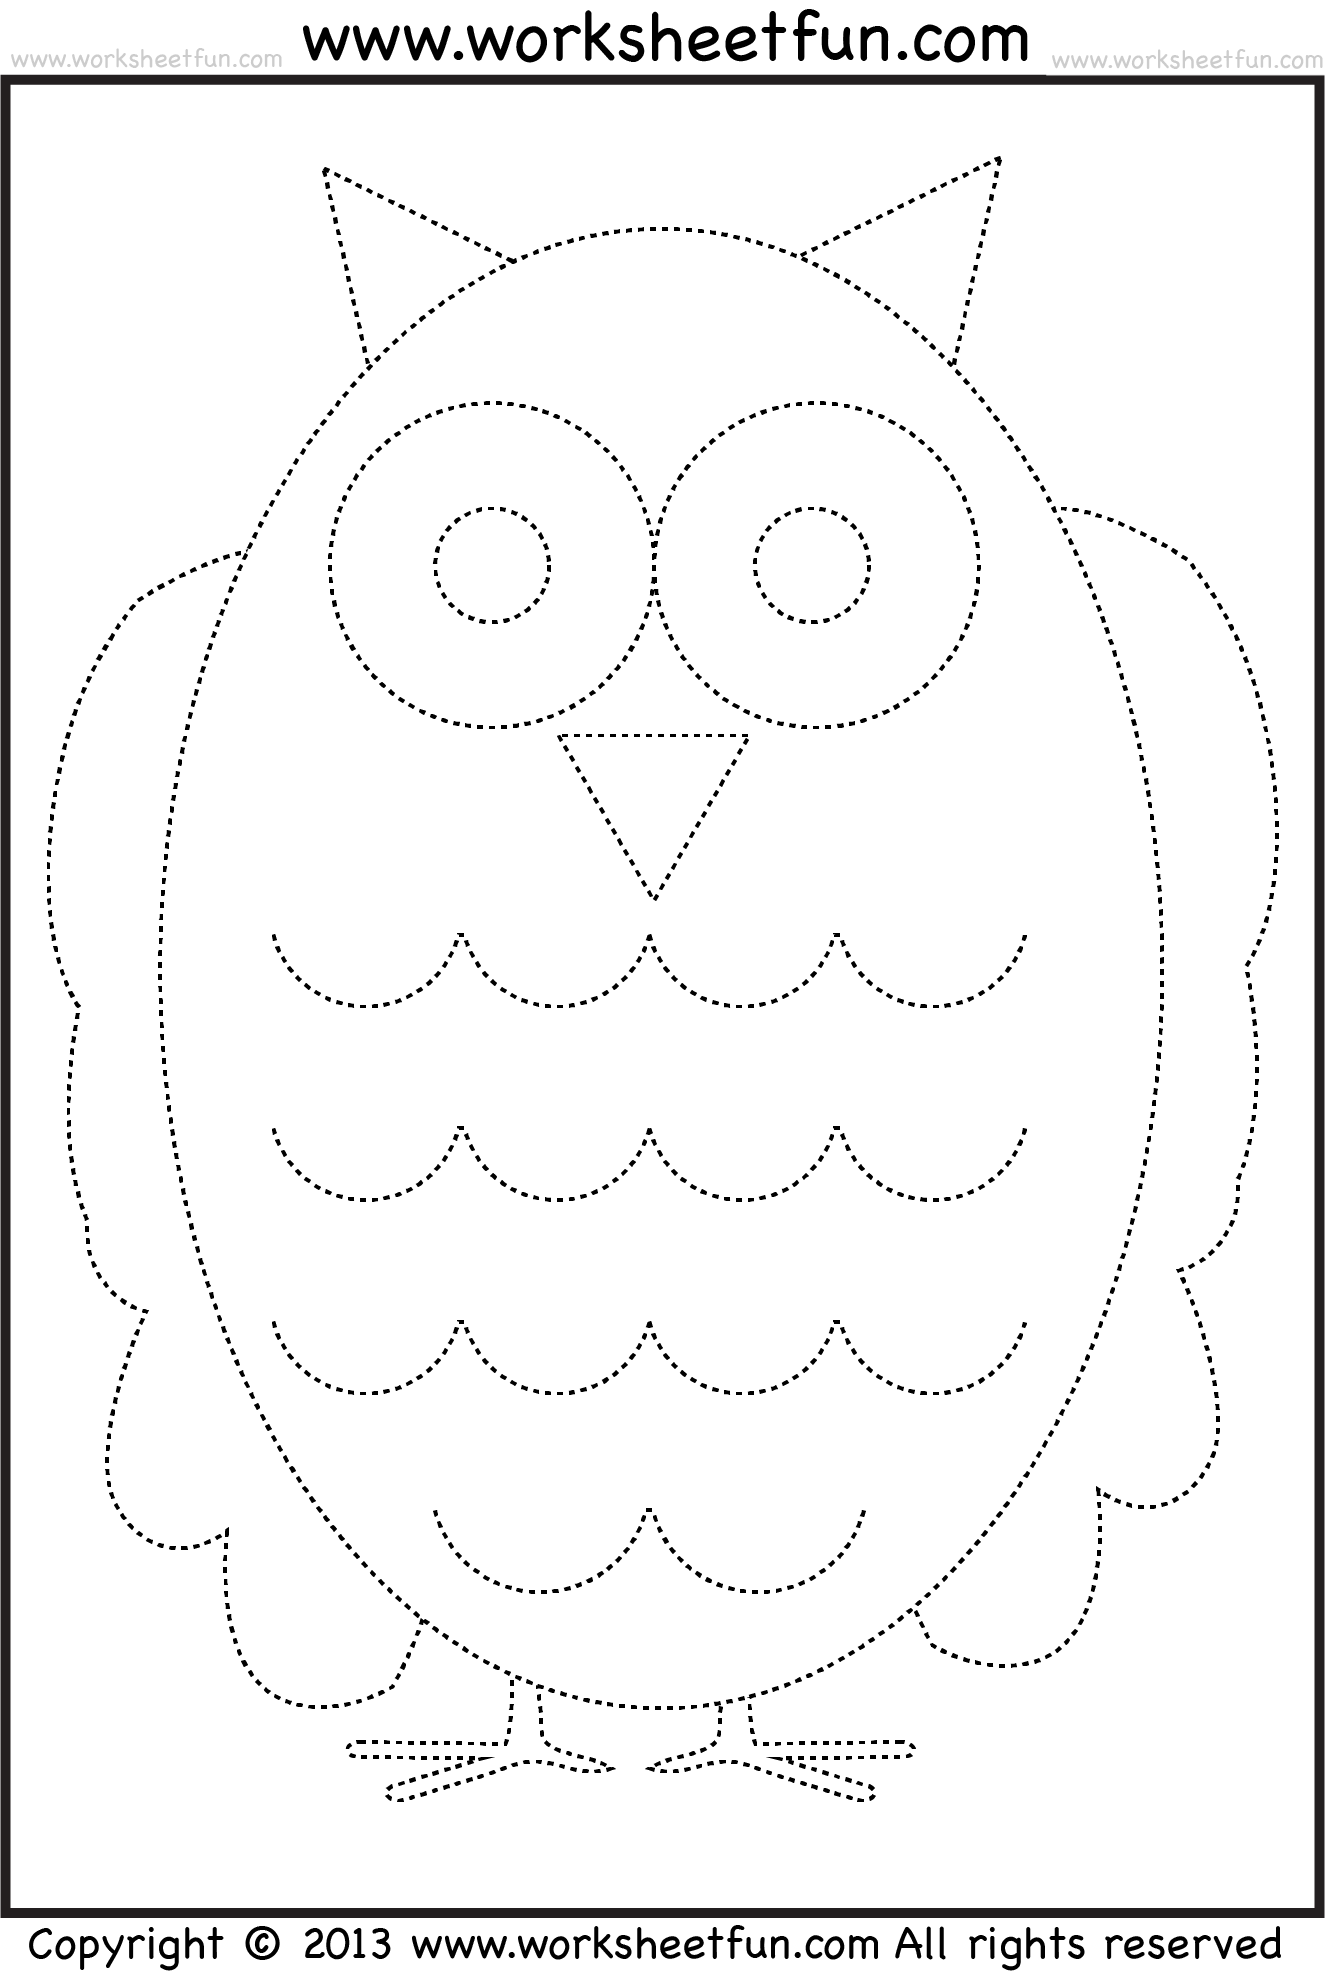 worksheet Tracing And Colouring Worksheets by far the coolest free website for education ive seen owl tracing and coloring 4 halloween worksheets printable worksheets